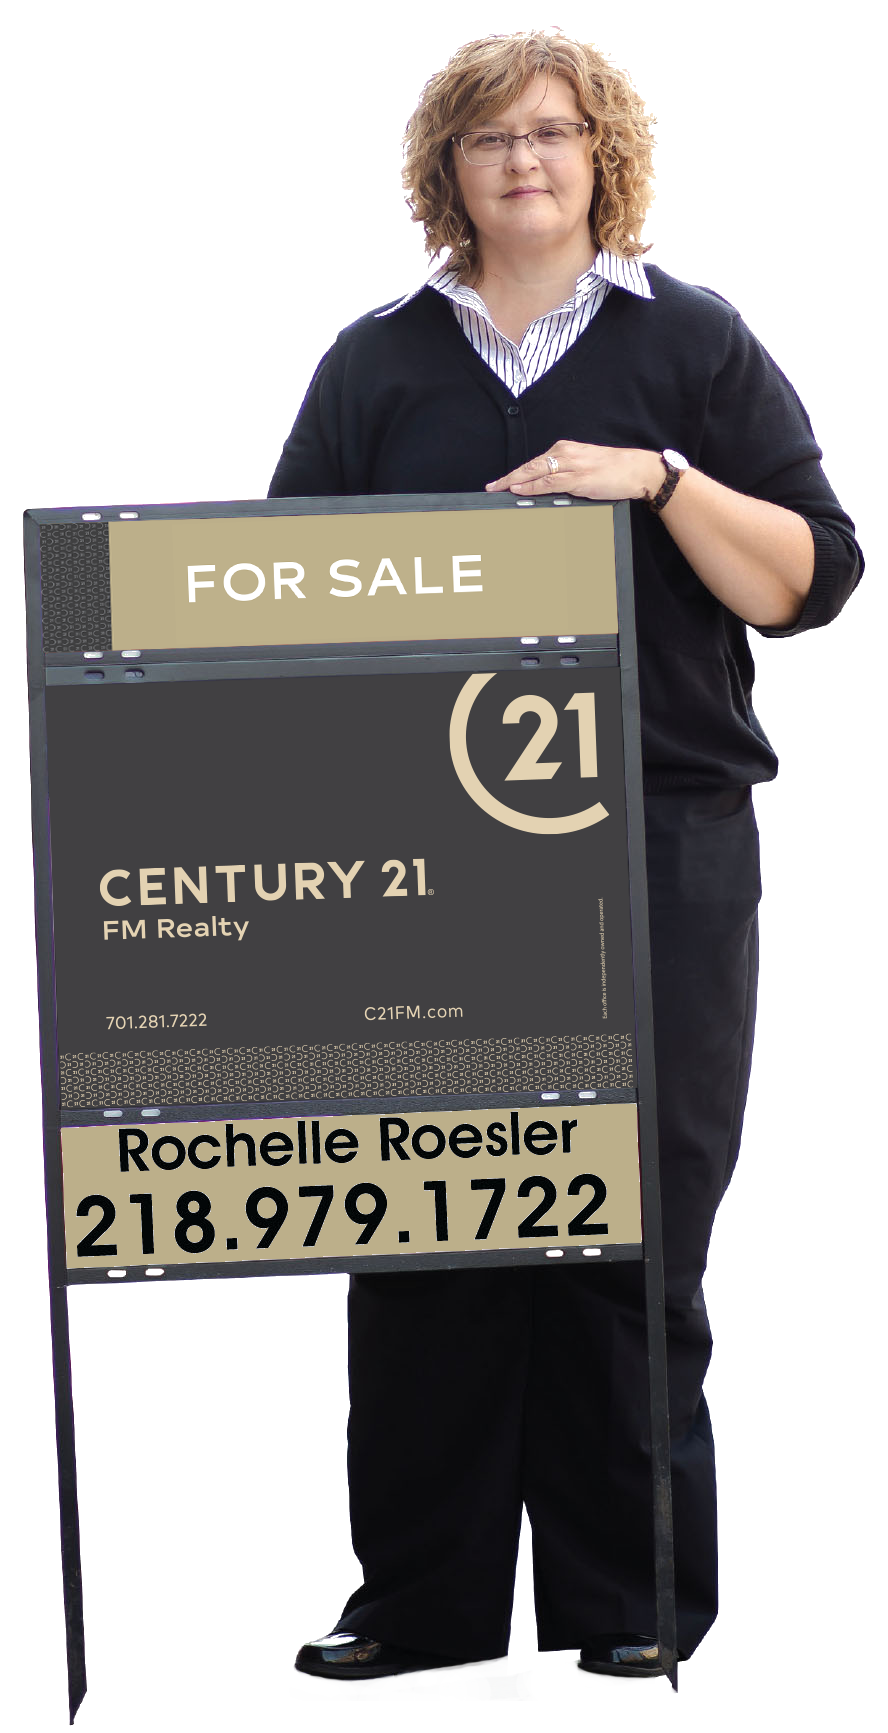 Rochelle Roesler at Century 21